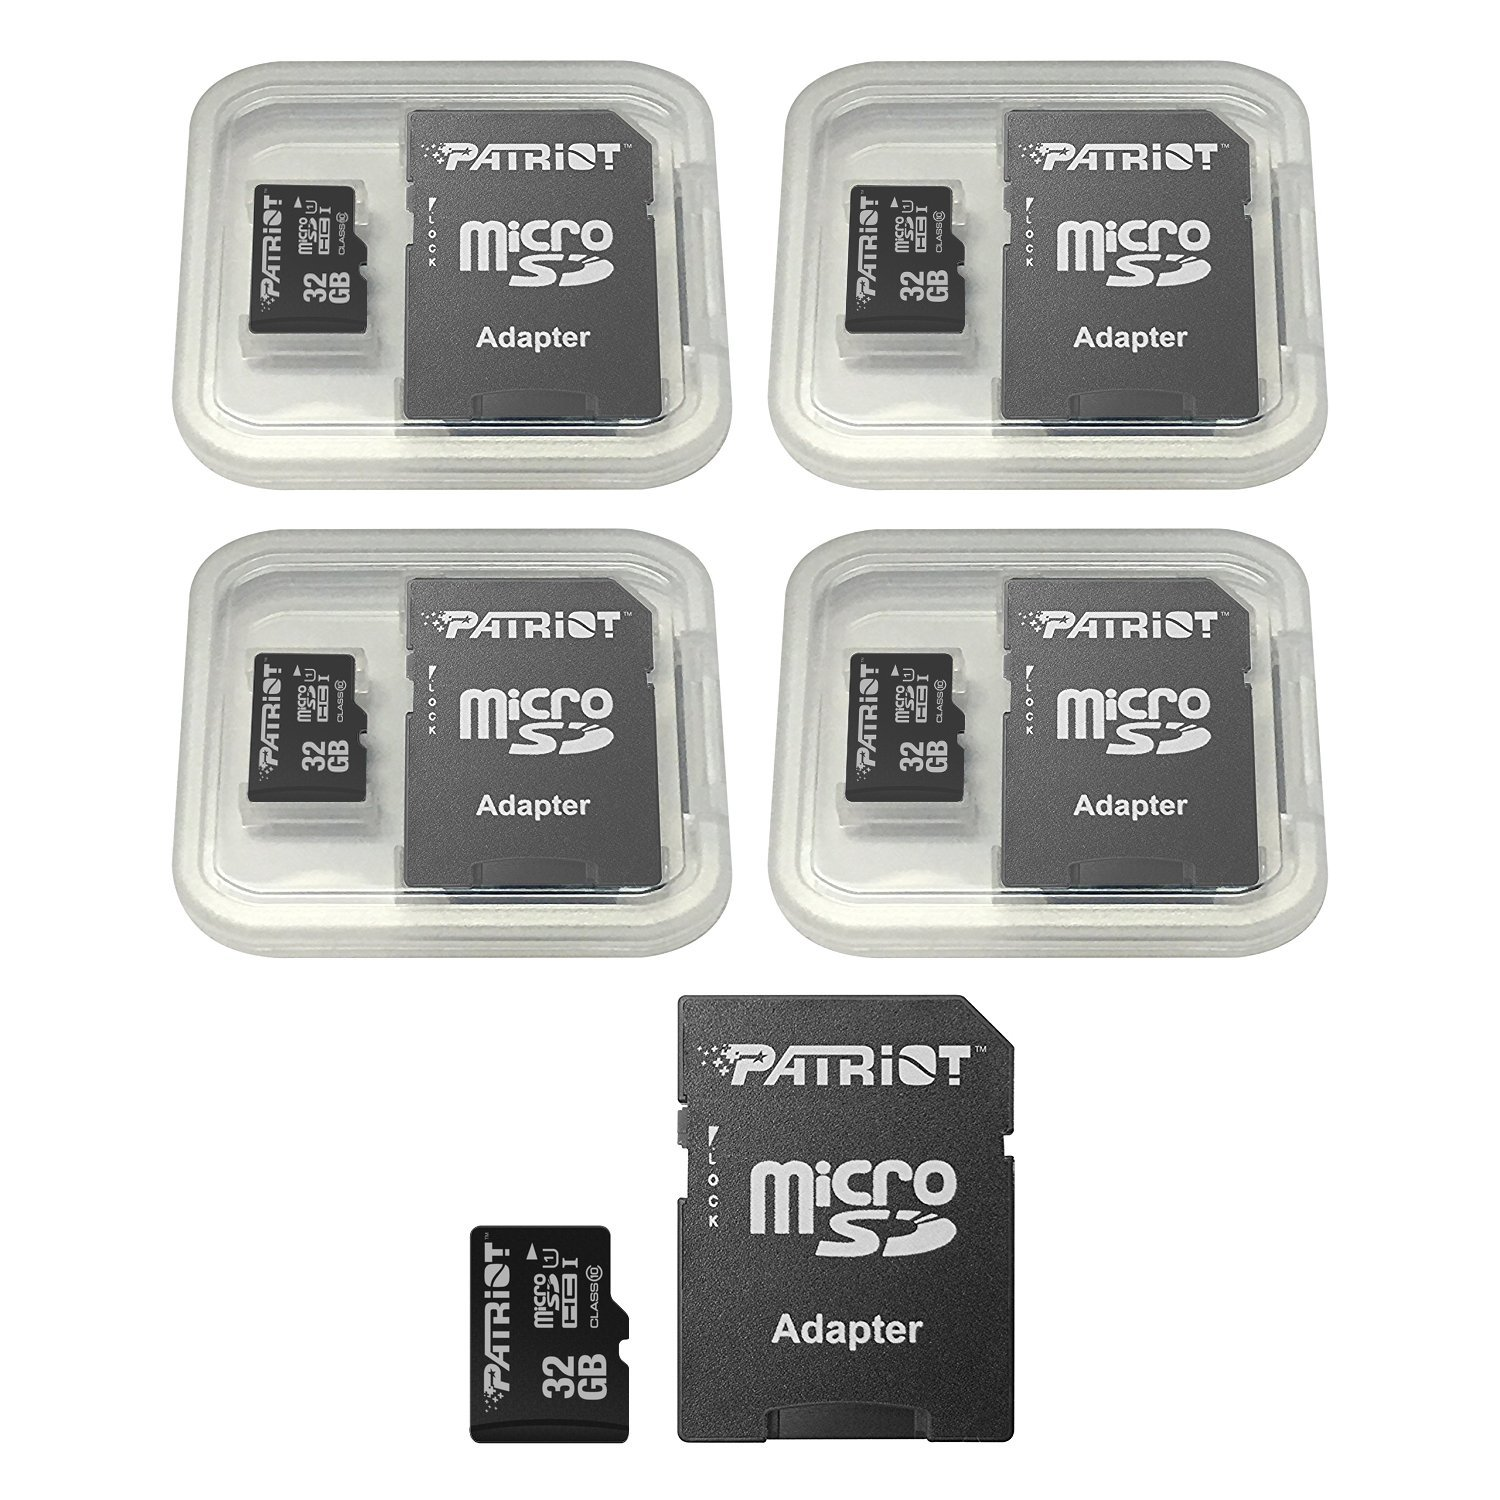 Patriot LX Series 32GB Micro SDHC - Class 10 UHS-I - 5 Pack (PSF32GMCSDHC5PK) by Patriot (Image #2)